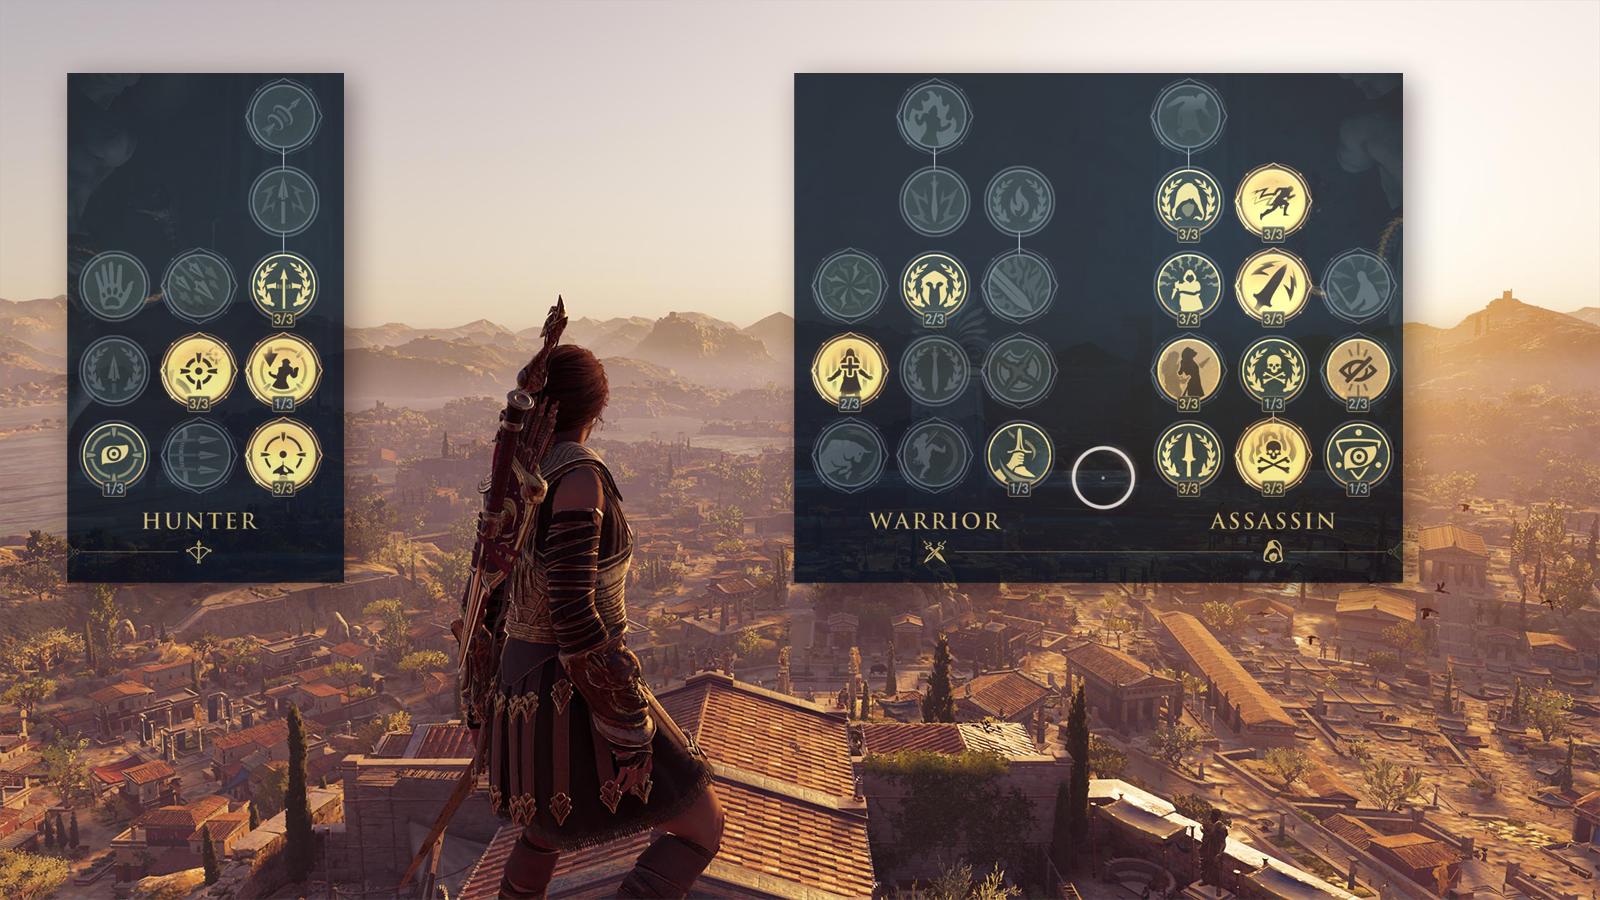 Assassin's Creed Odyssey Smartly Refines The Origins Skill Tree